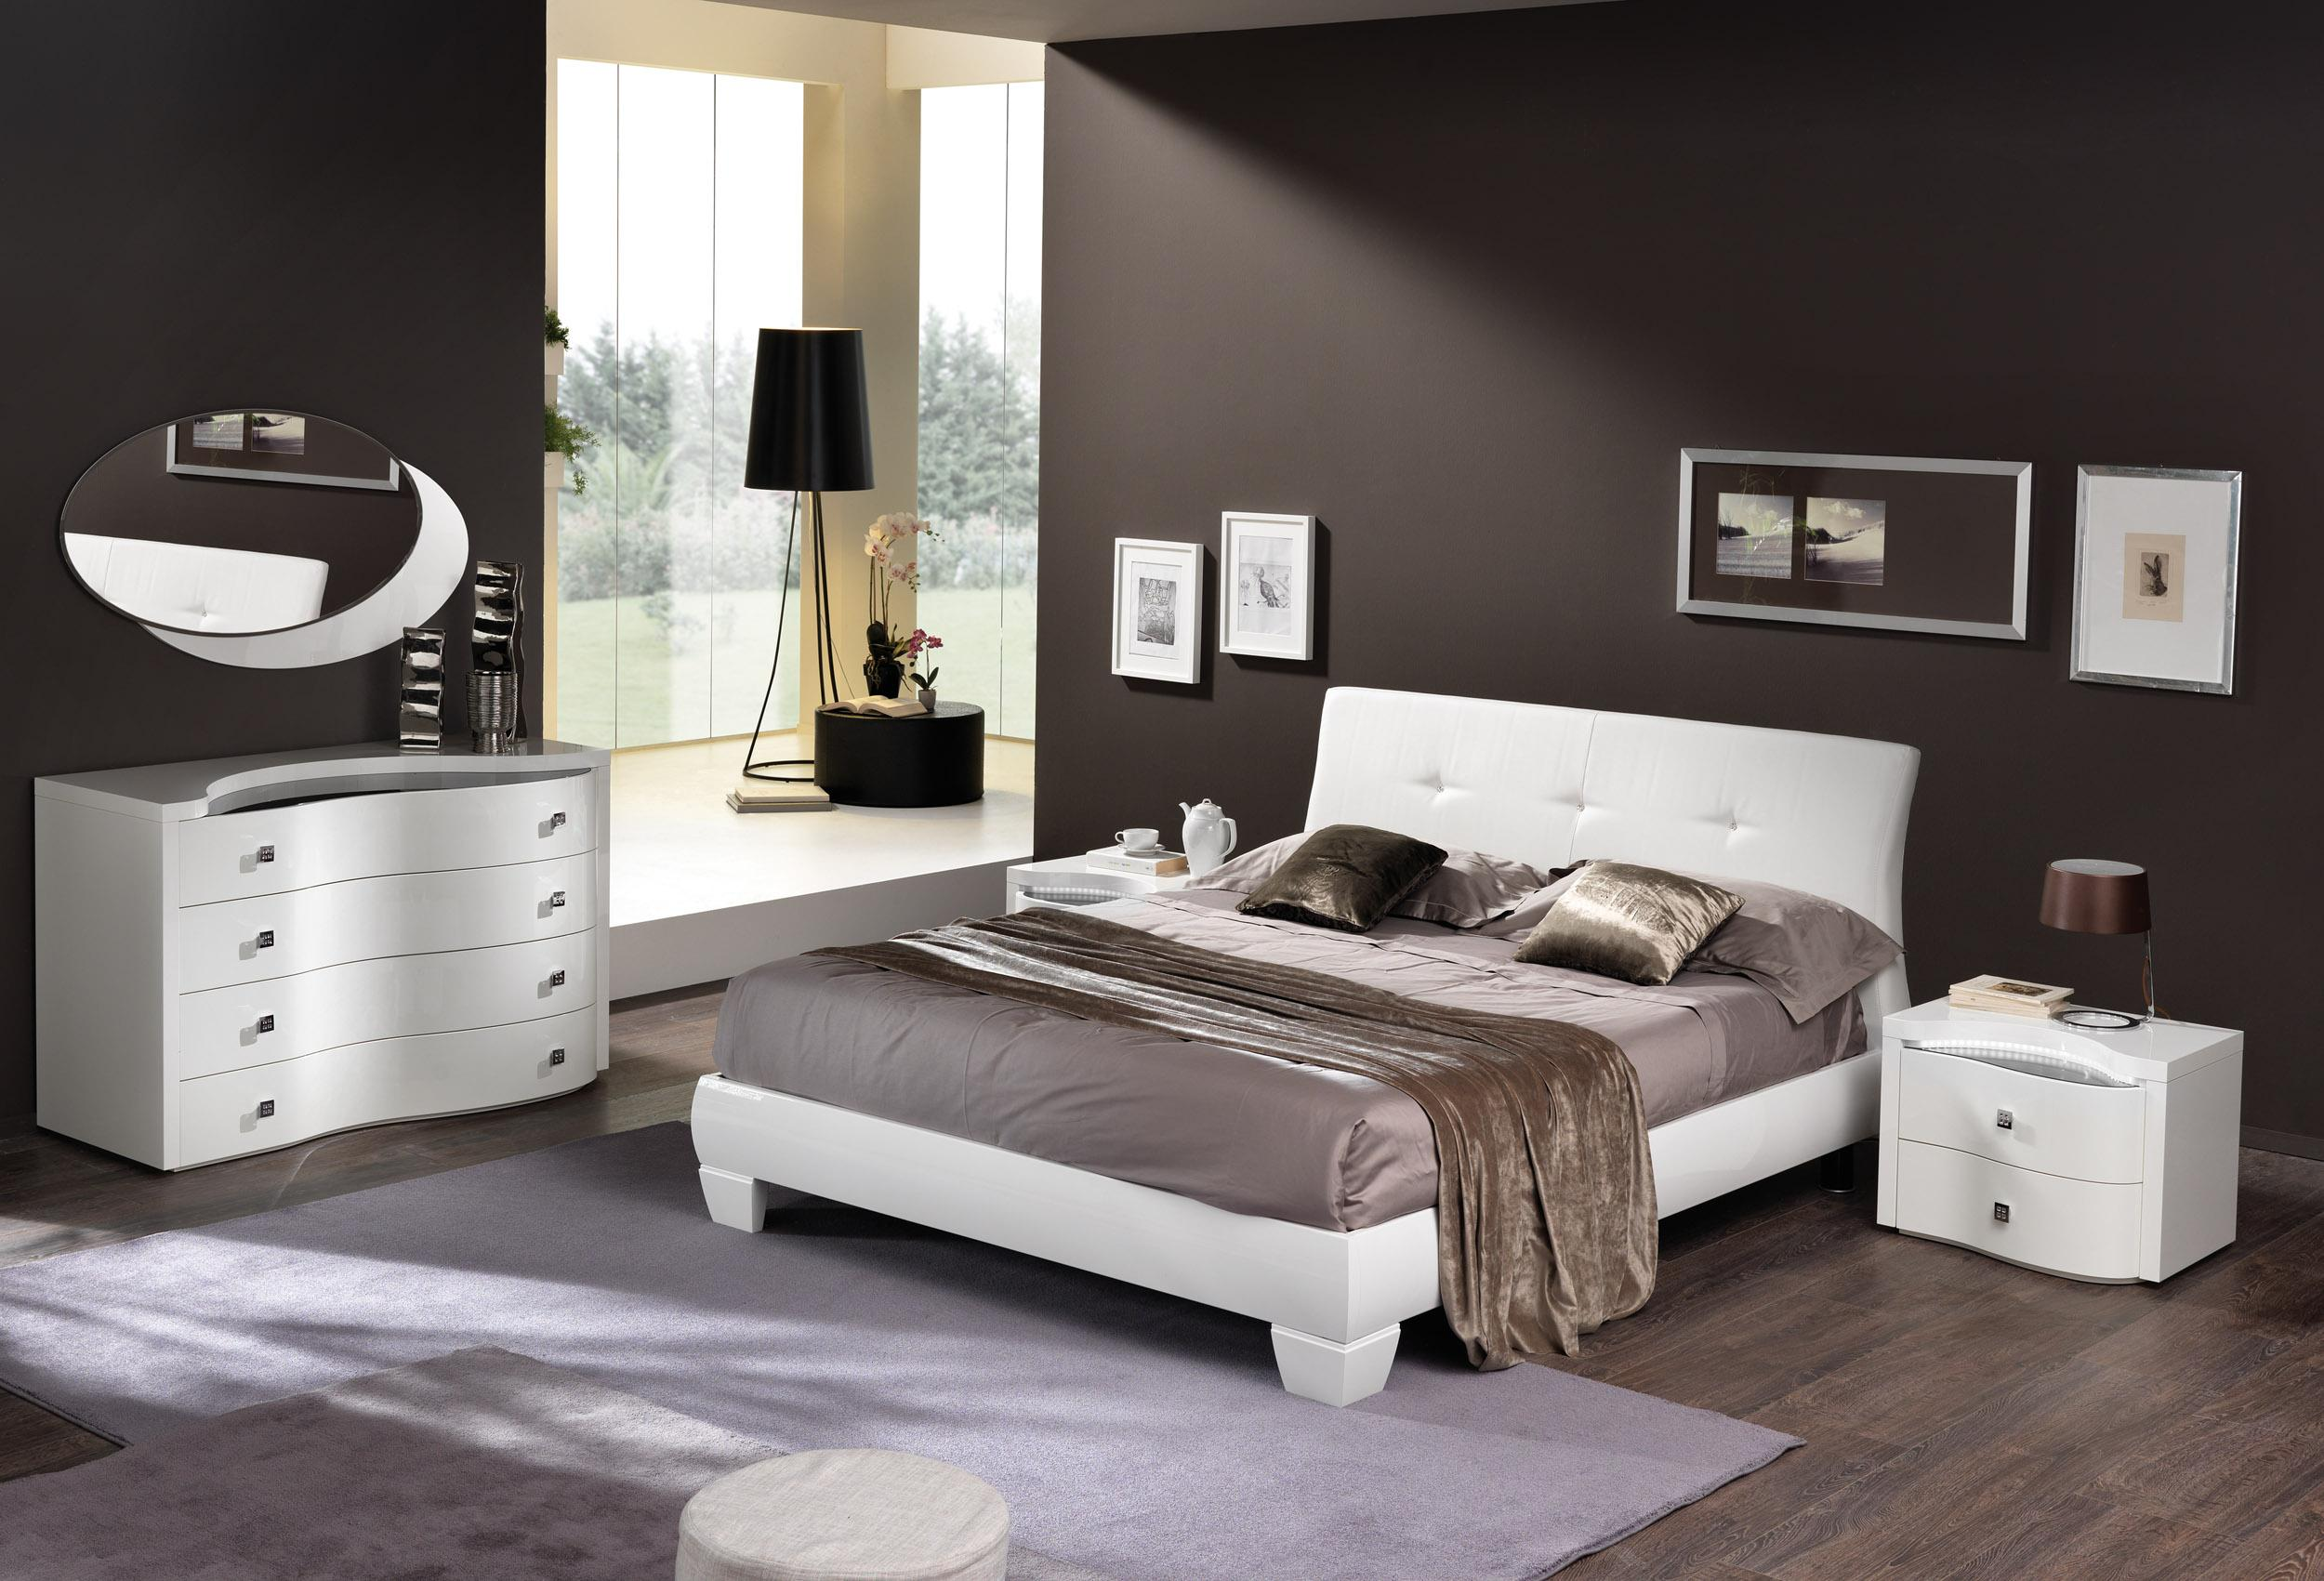 Made in italy leather elite modern bedroom set jackson - Contemporary modern bedroom sets ...